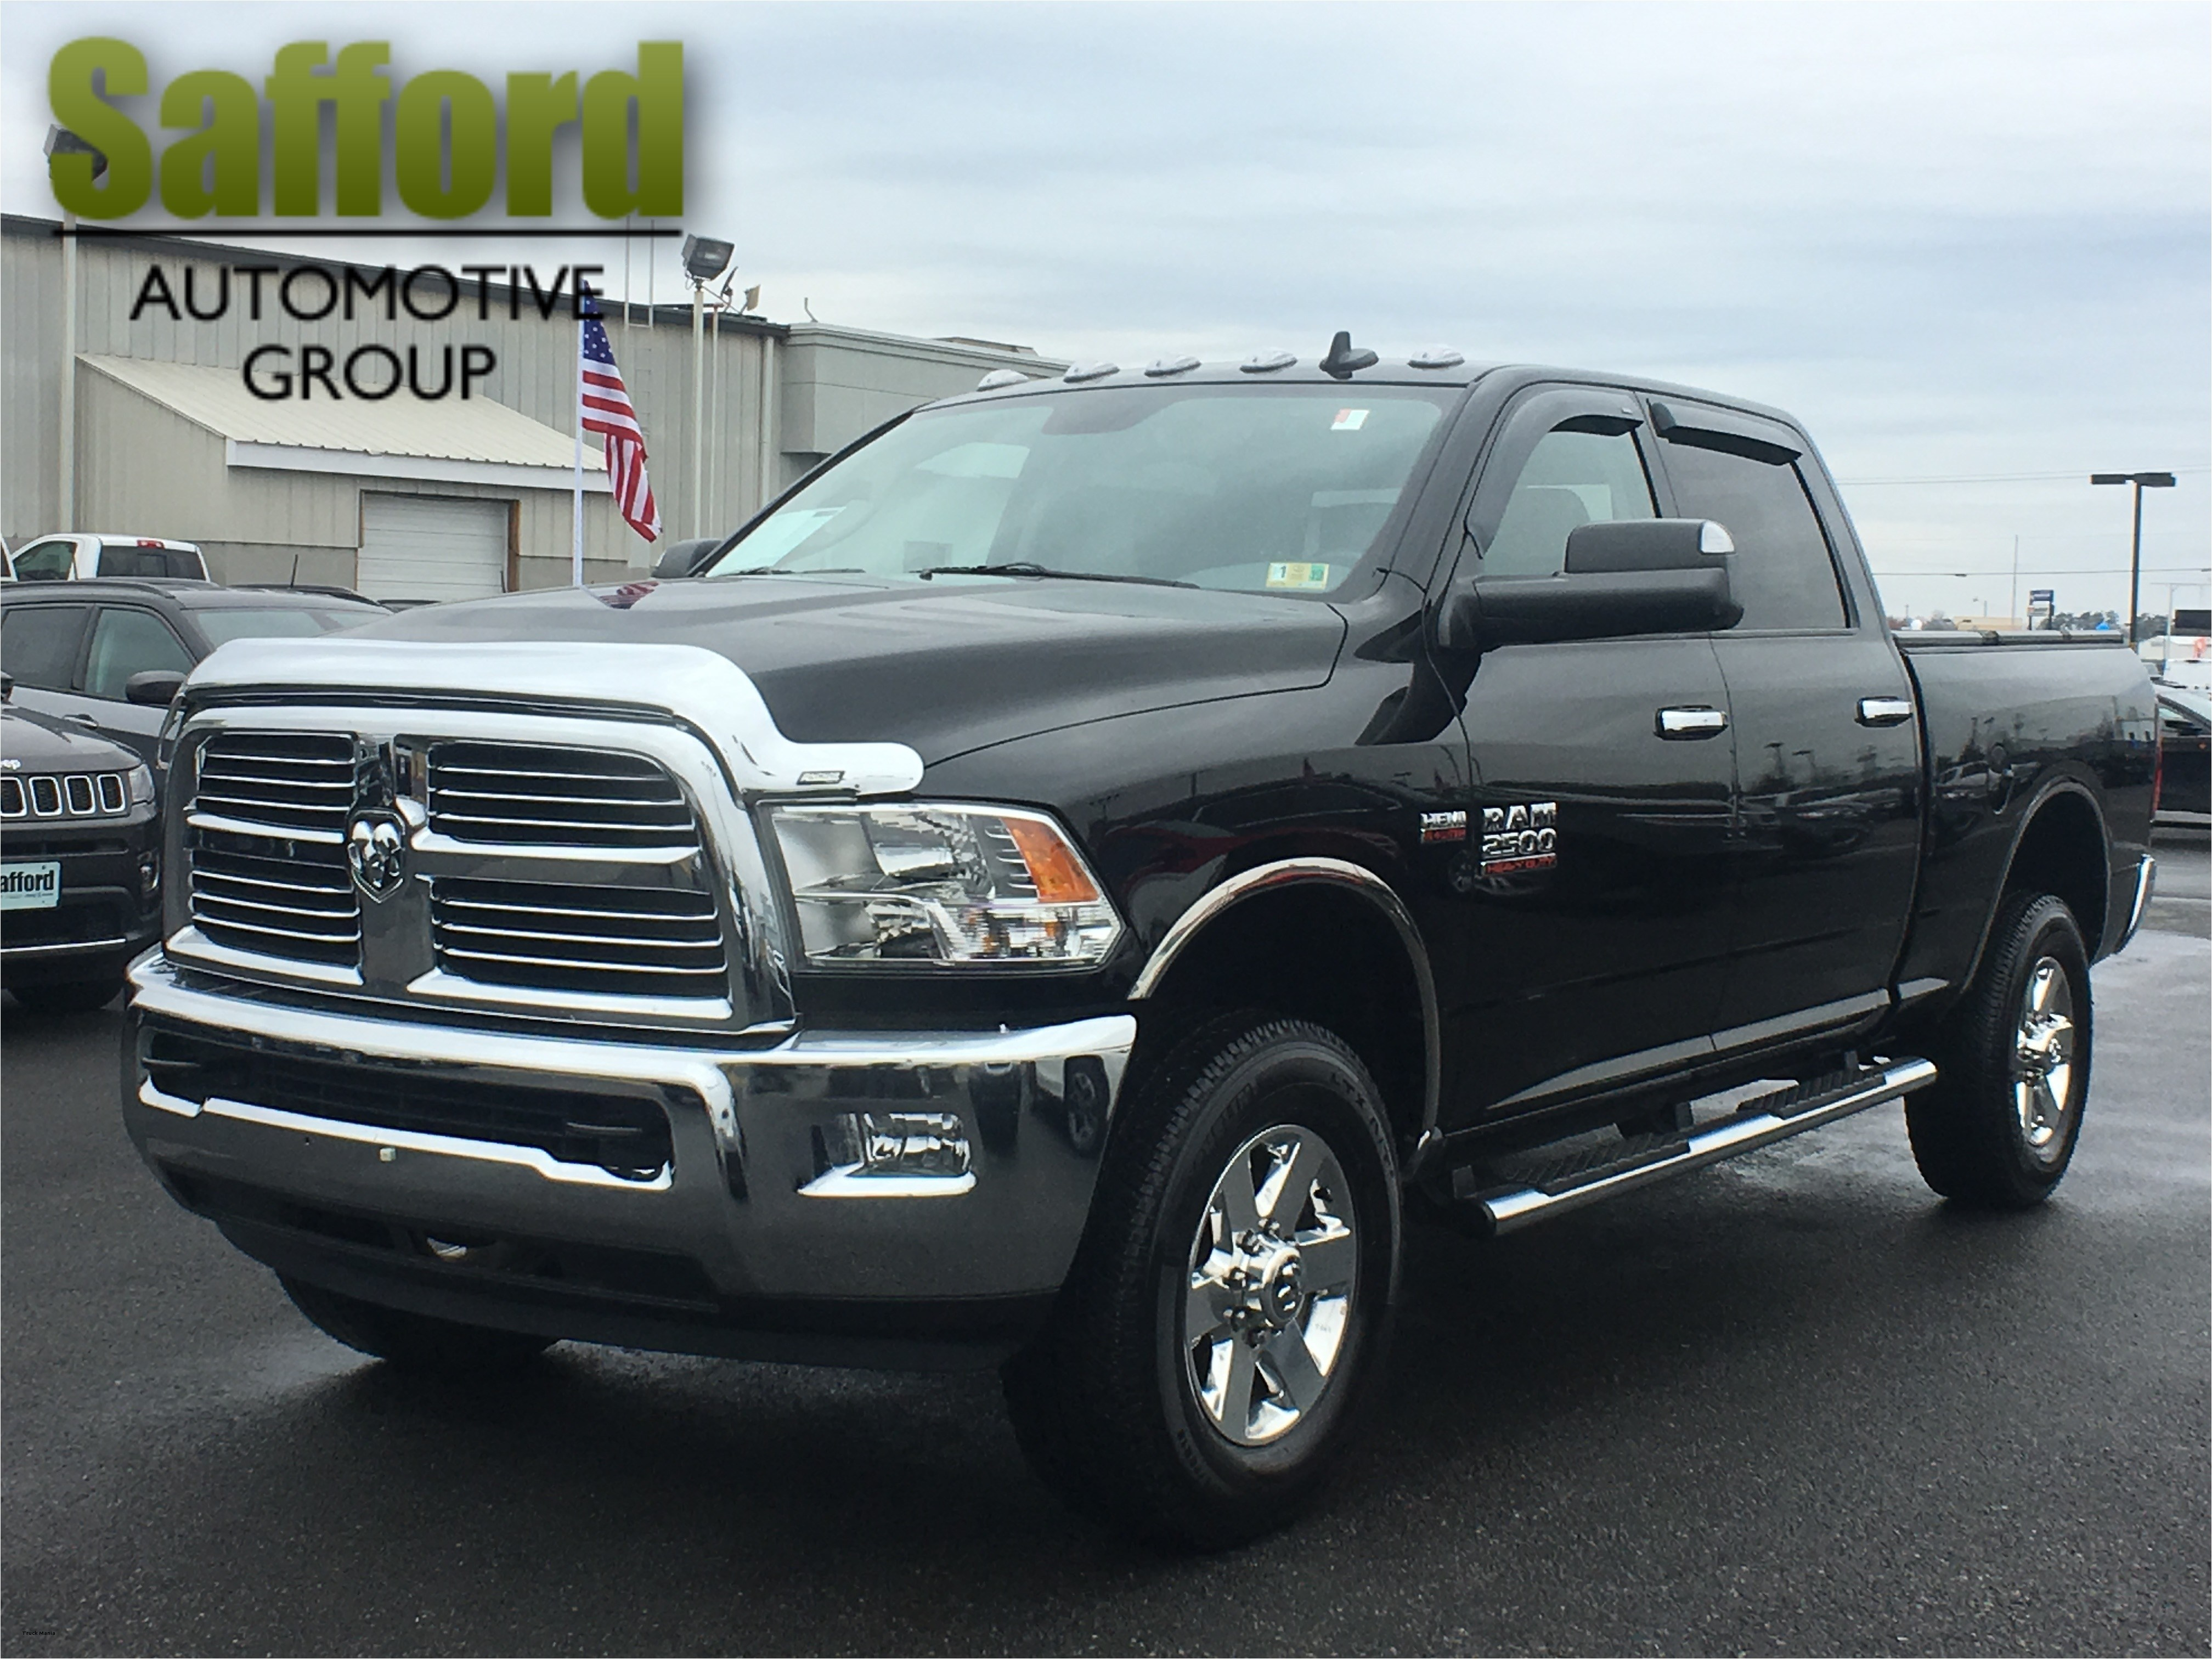 Craigslist Used Cars for Sale by Owner Fresh Craigslist Big Trucks for Sale by Owner Remarkable Affordable Used